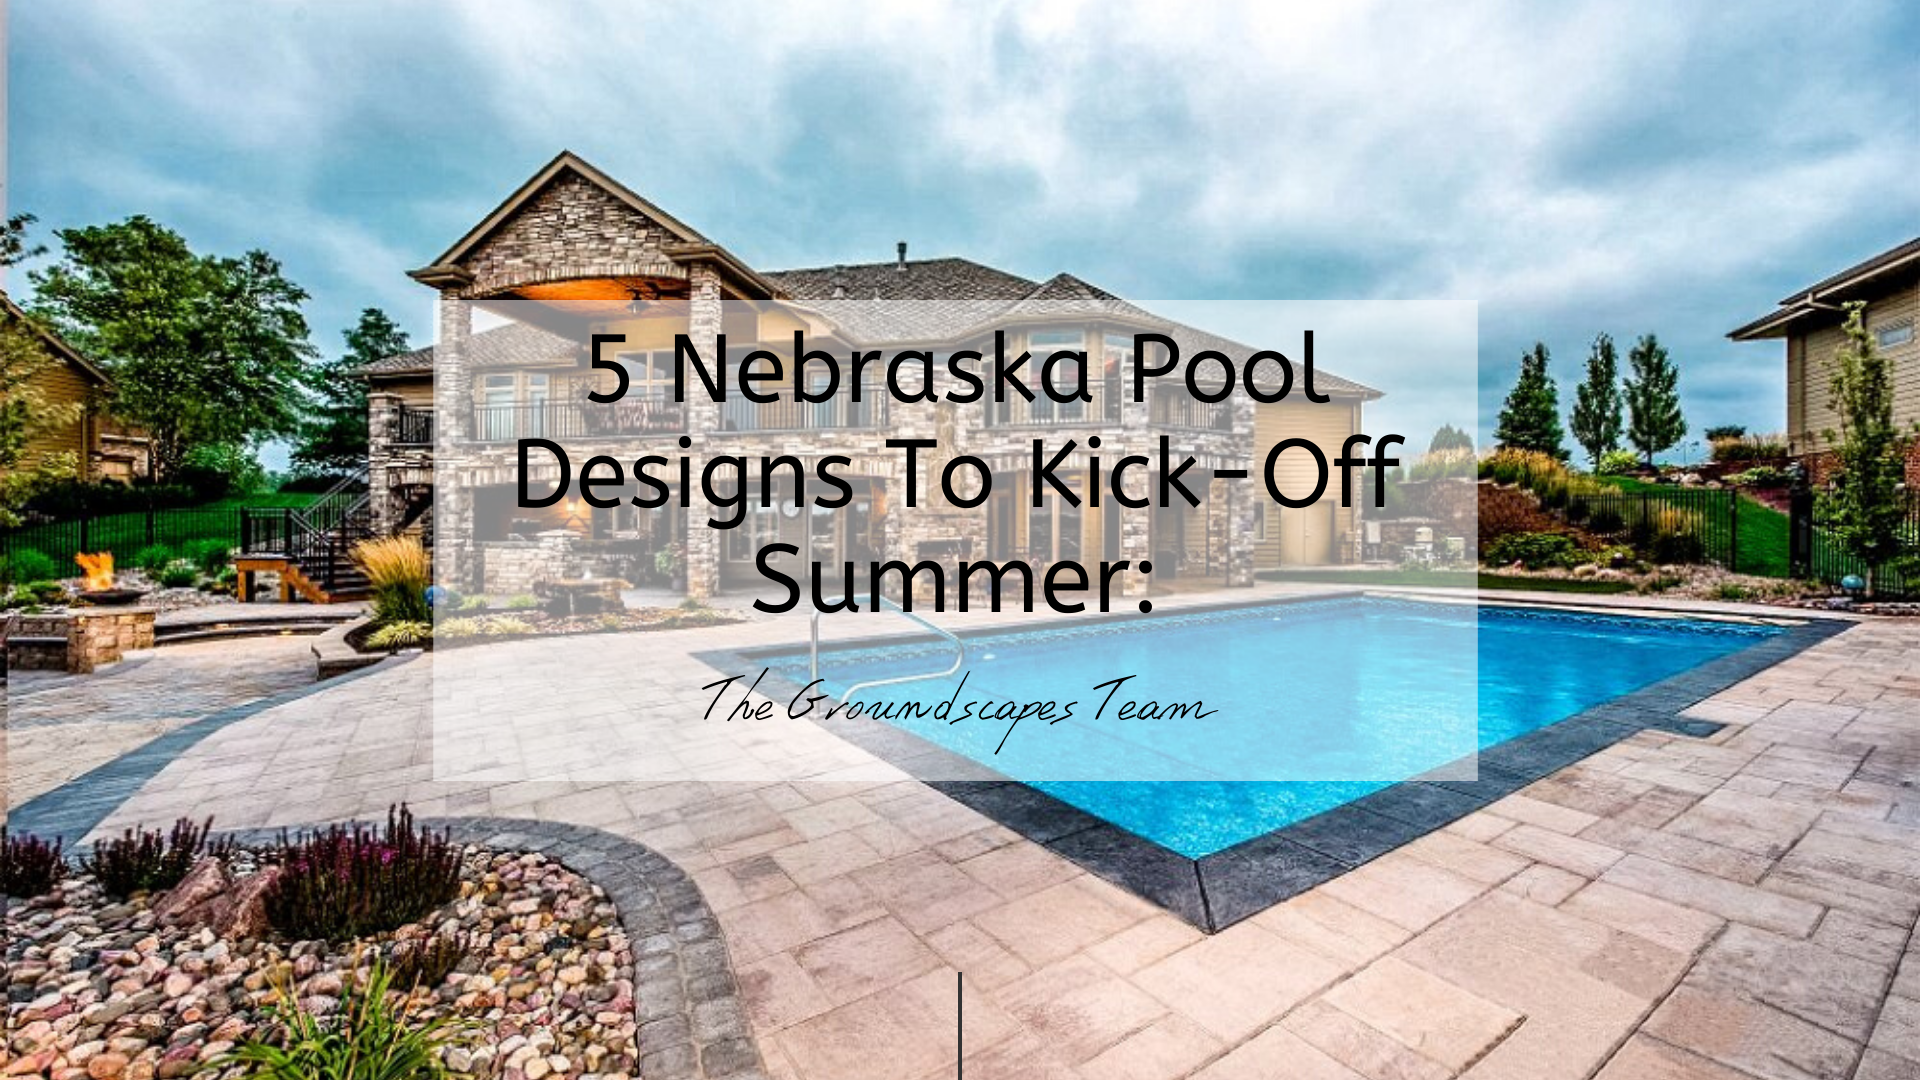 5 Nebraska Pool Designs To Kick-Off Summer: